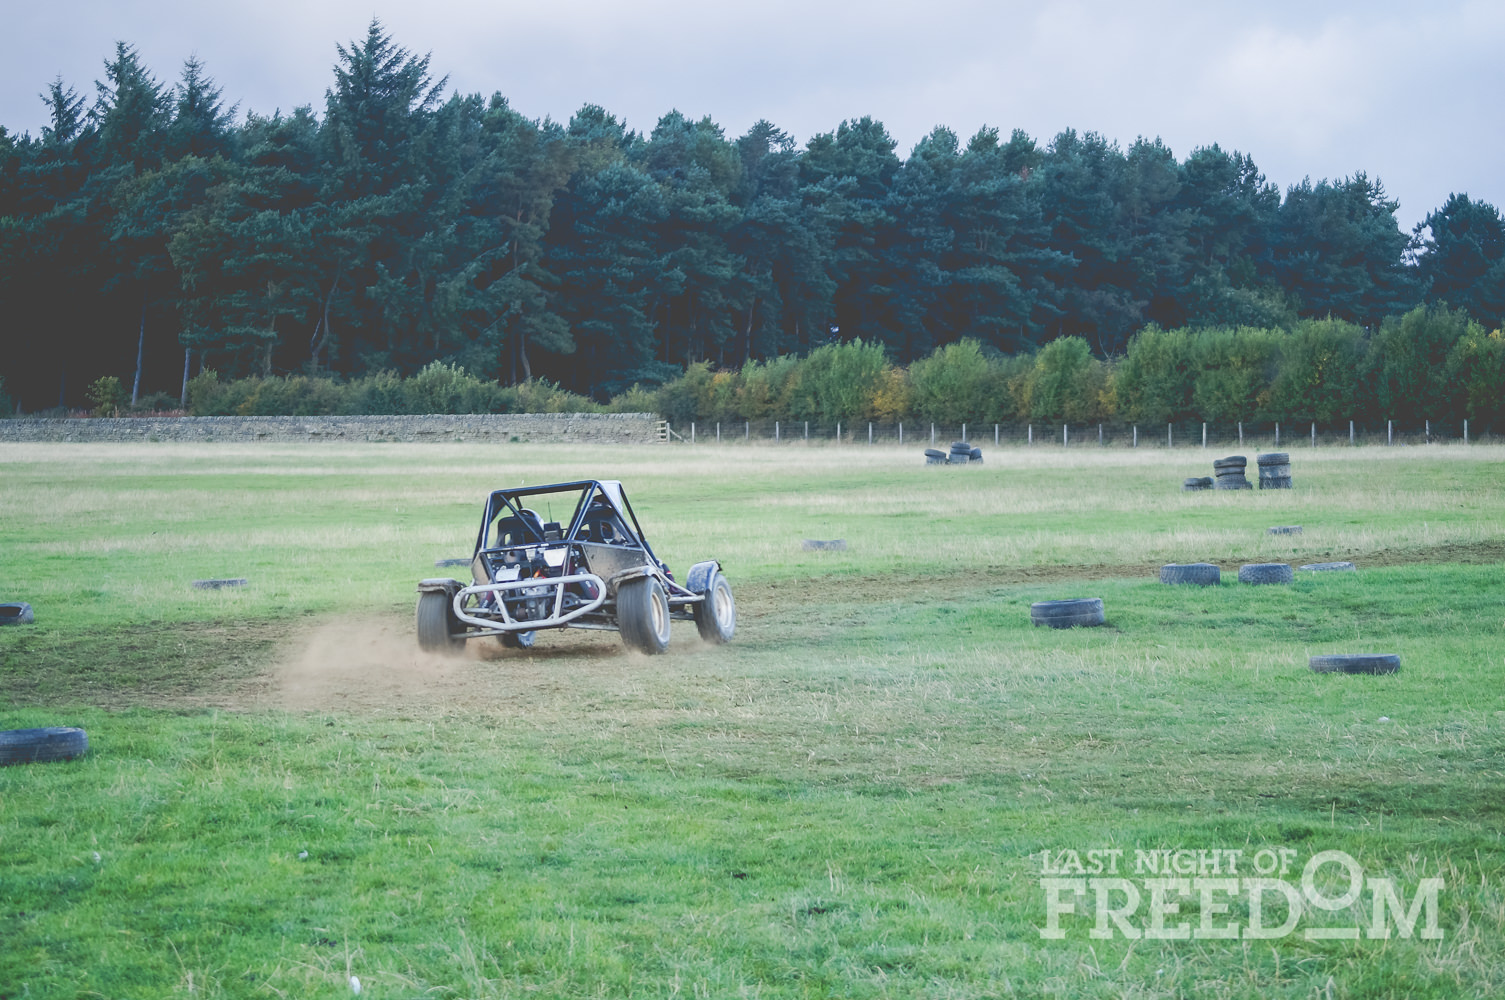 A rage buggy being driven around an outdoor track